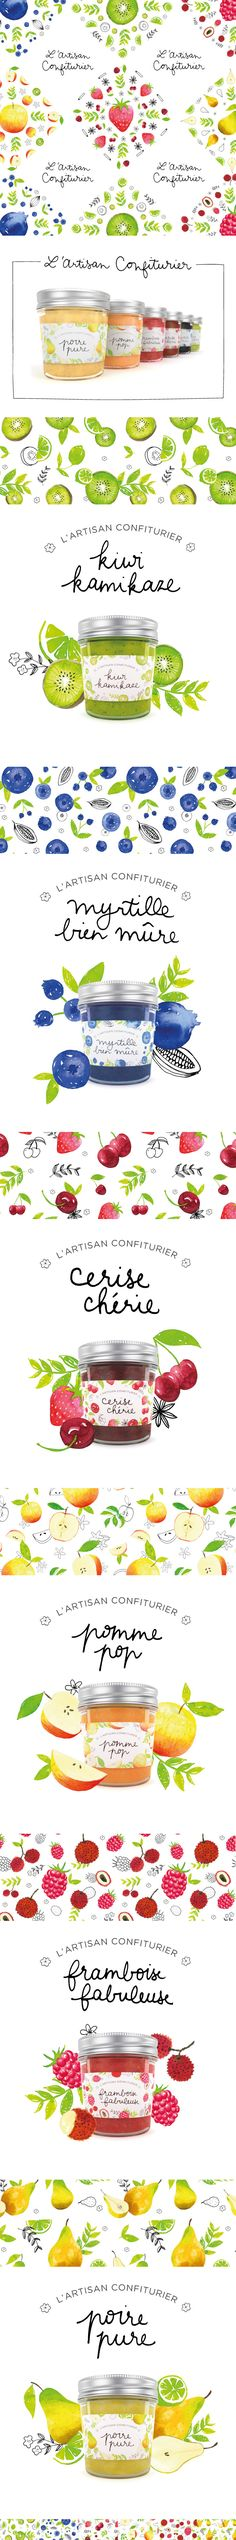 L'Artisan Confiturier - Illustrated Jam Packaging on Behance